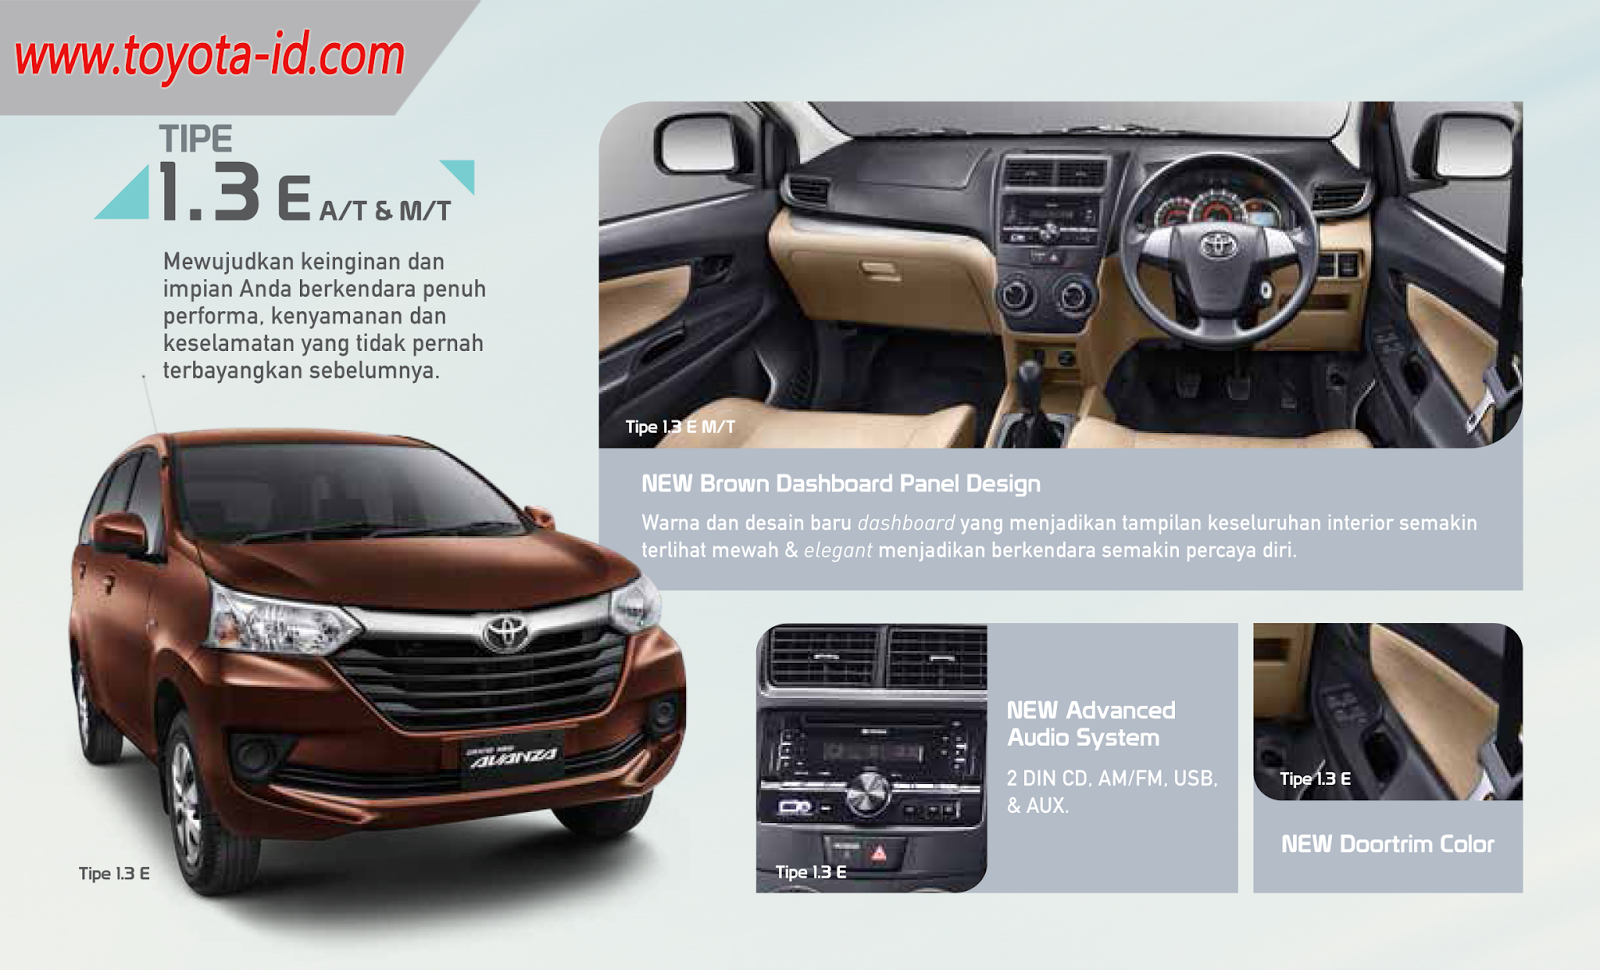 Grand New Toyota Avanza 2015 Yaris Trd Sportivo Price In India Spesifikasi Astra